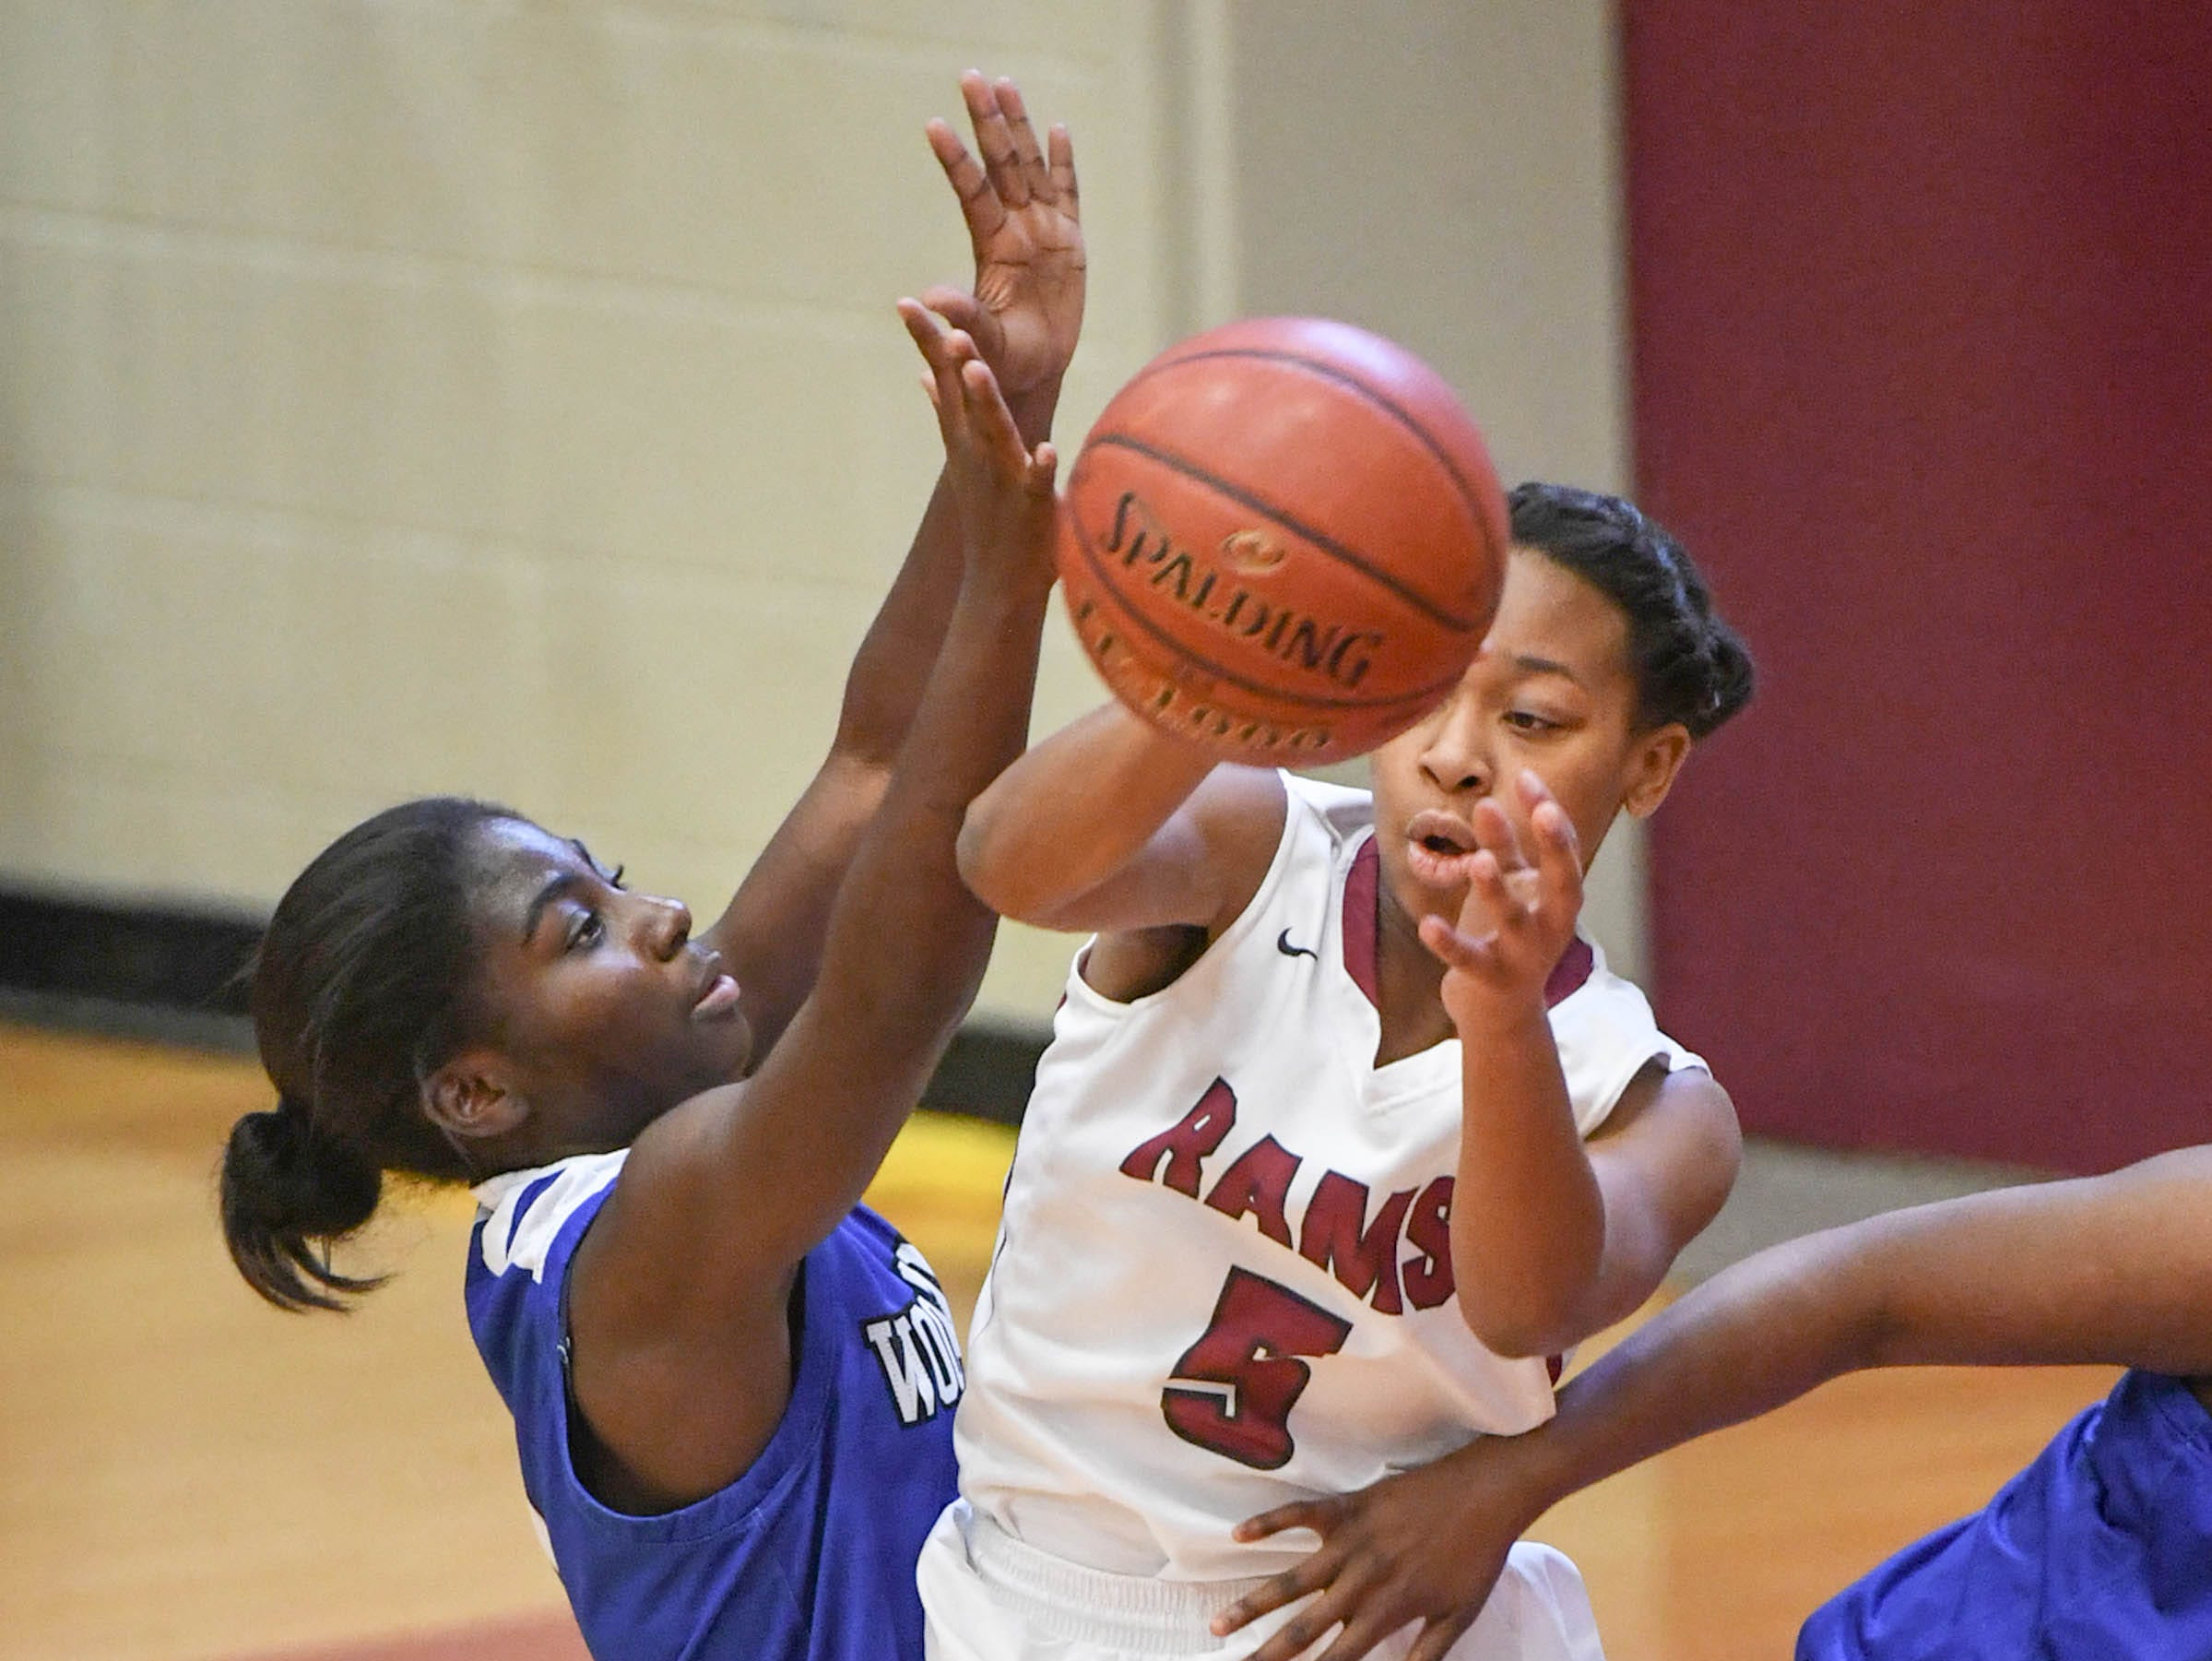 Westside senior Chelsea Adger(5) passes the ball during the third quarter at Westside High School in Anderson on Tuesday.